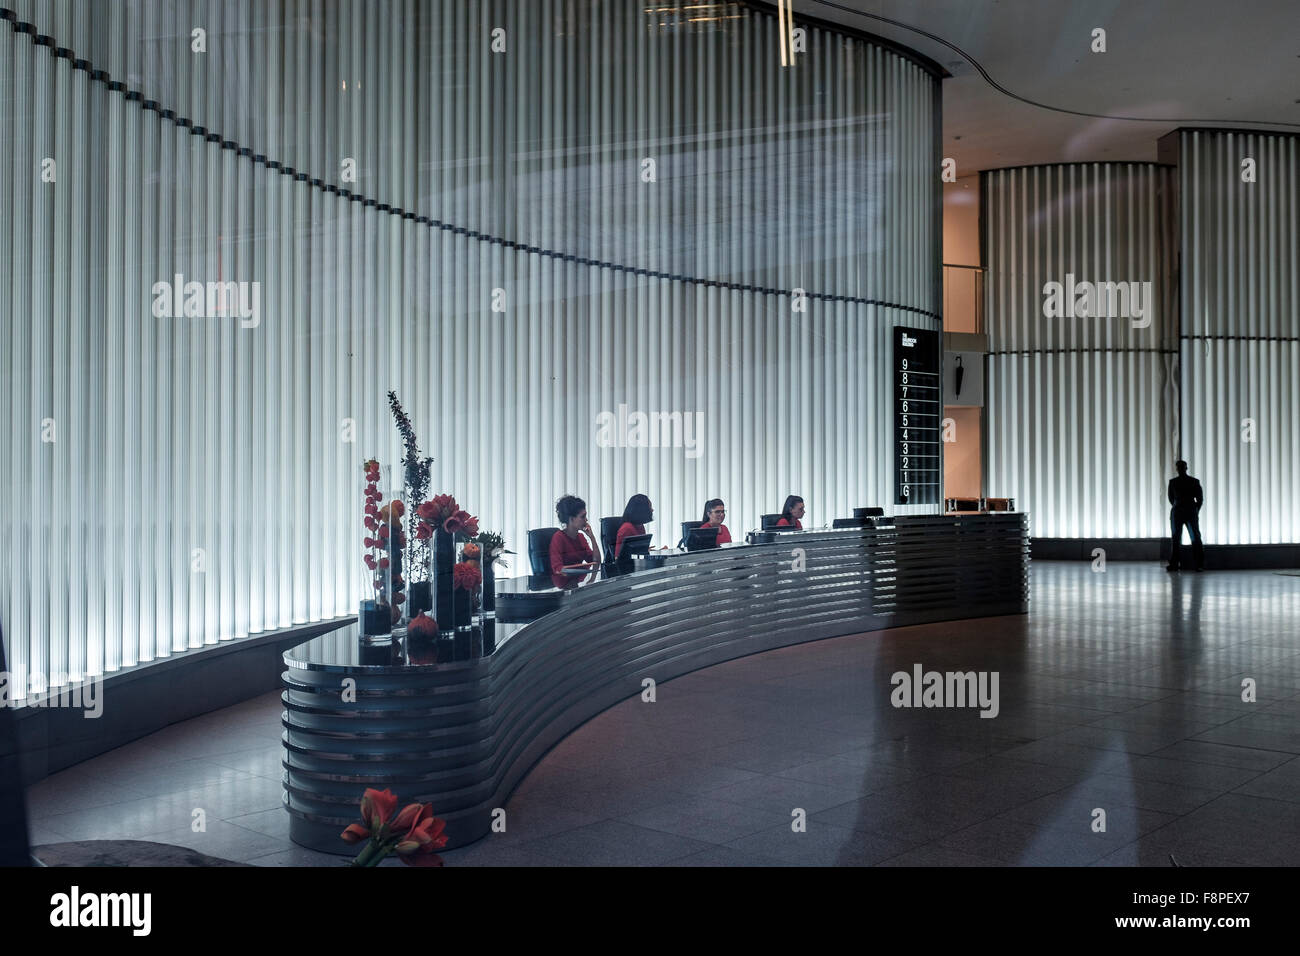 Reception desk  in multinational,finance company,The Walbrook building,City of London,England - Stock Image